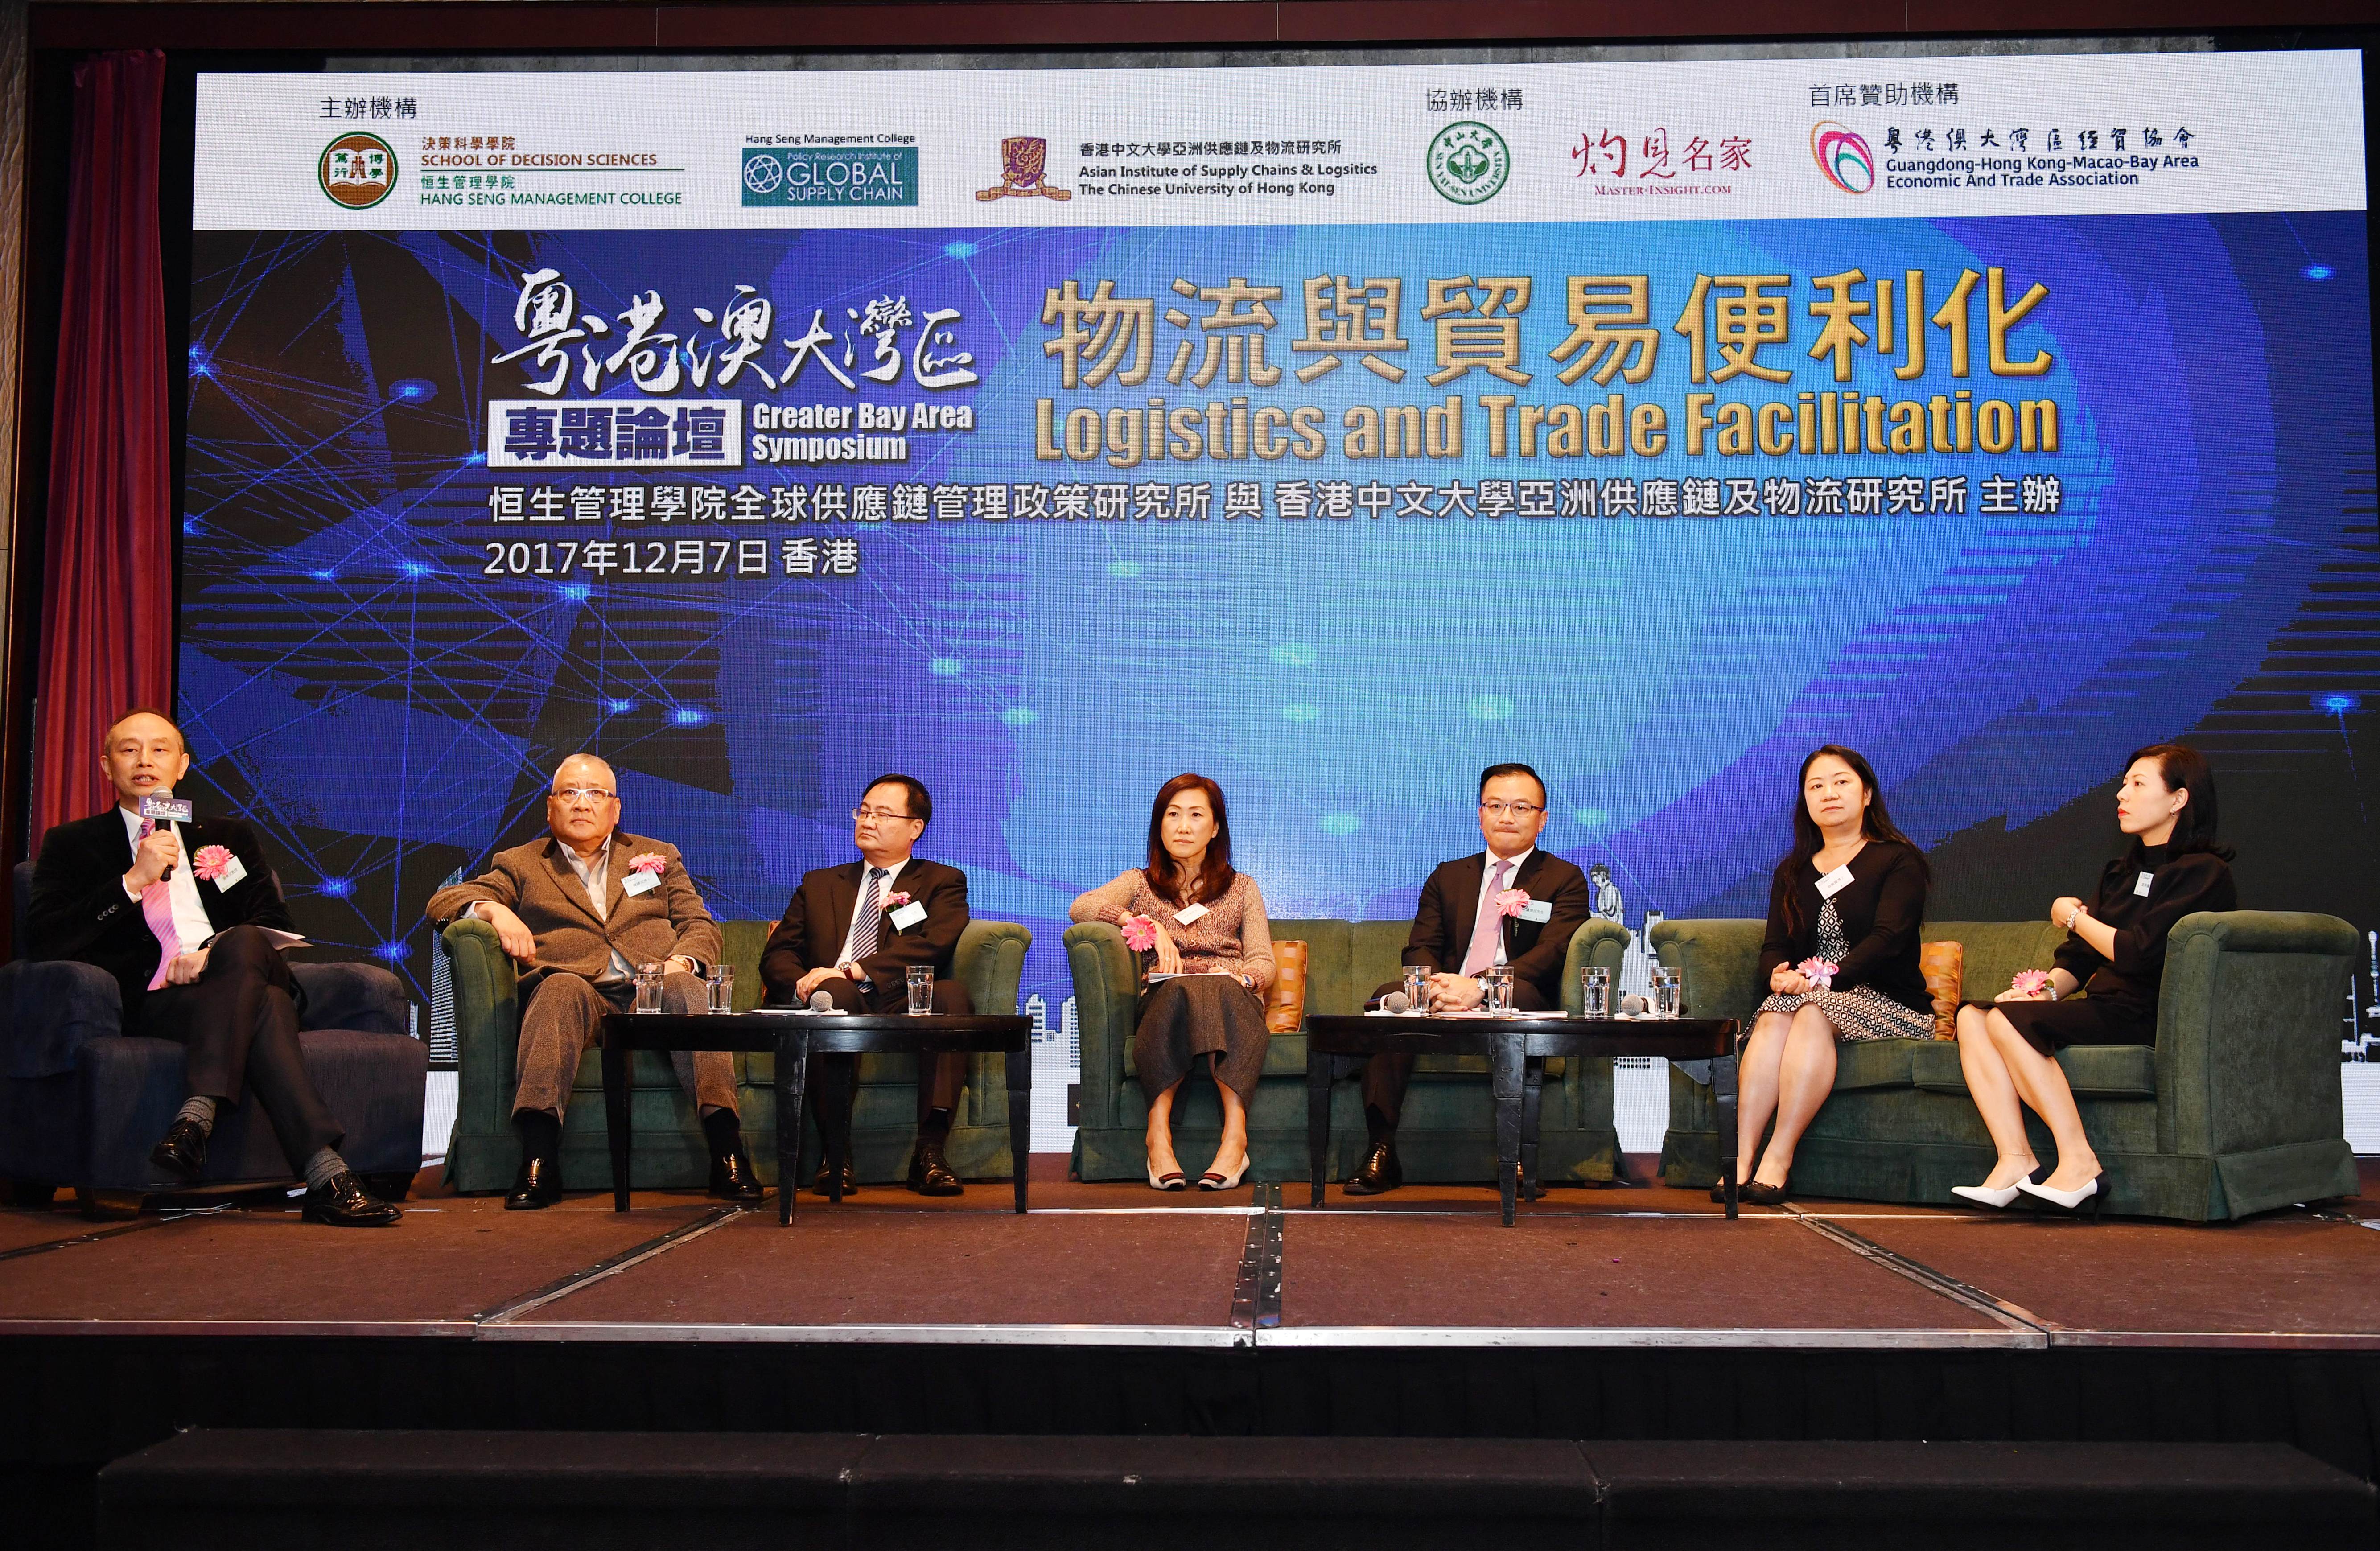 (From left) Professor Cheung Waiman, Dr Edward Chan, Mr Sunny Ho, Mrs Jenny Lam, Mr Horace Lo, Dr Venus Lun and Ir Elsa Yuen explored the development prospects of the trading and logistics sector in Hong Kong.